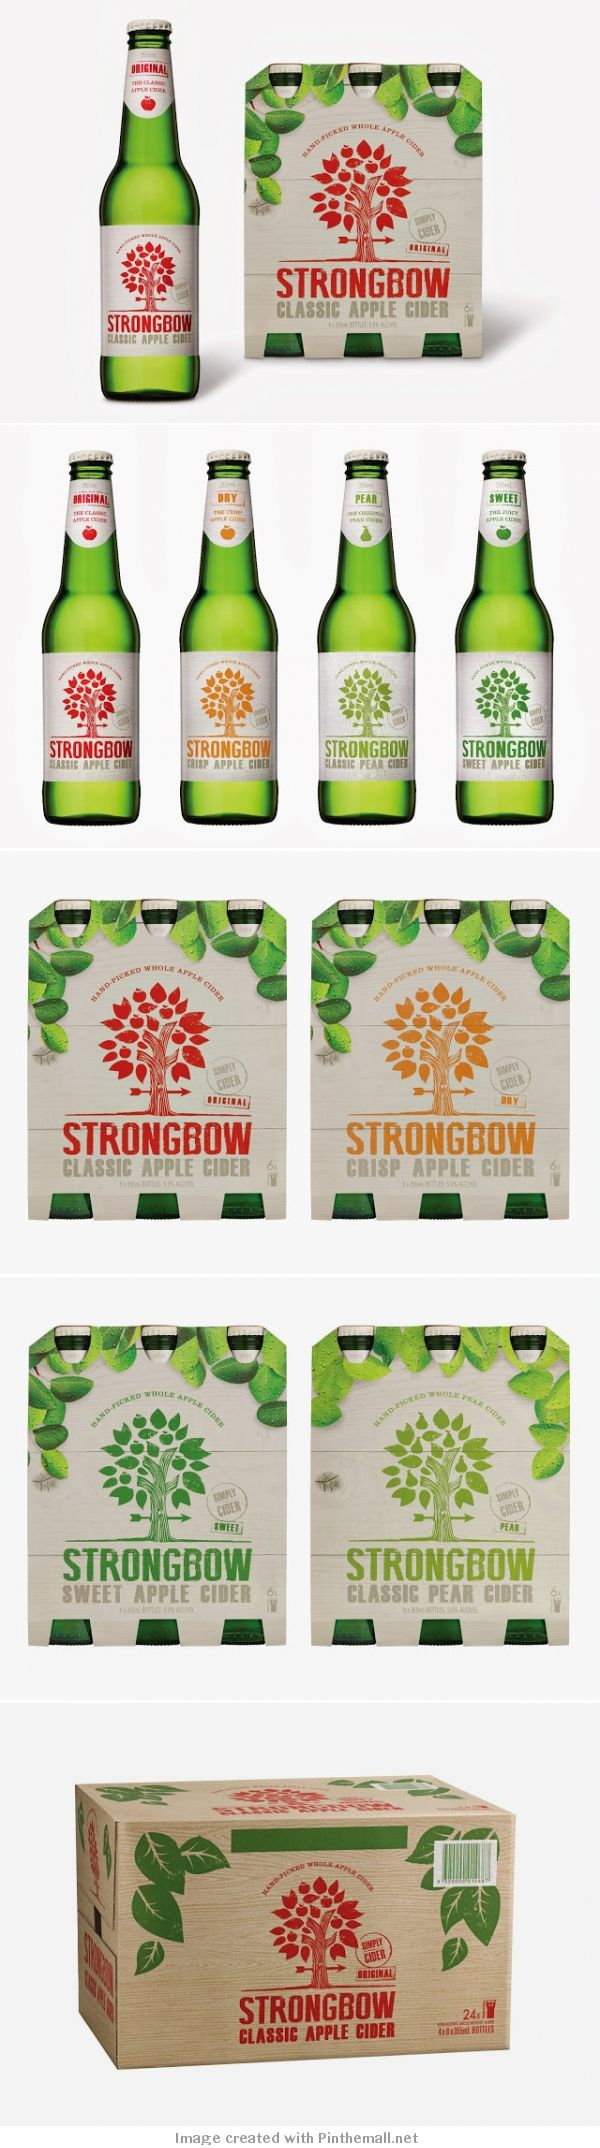 Strongbow apple cider packaging